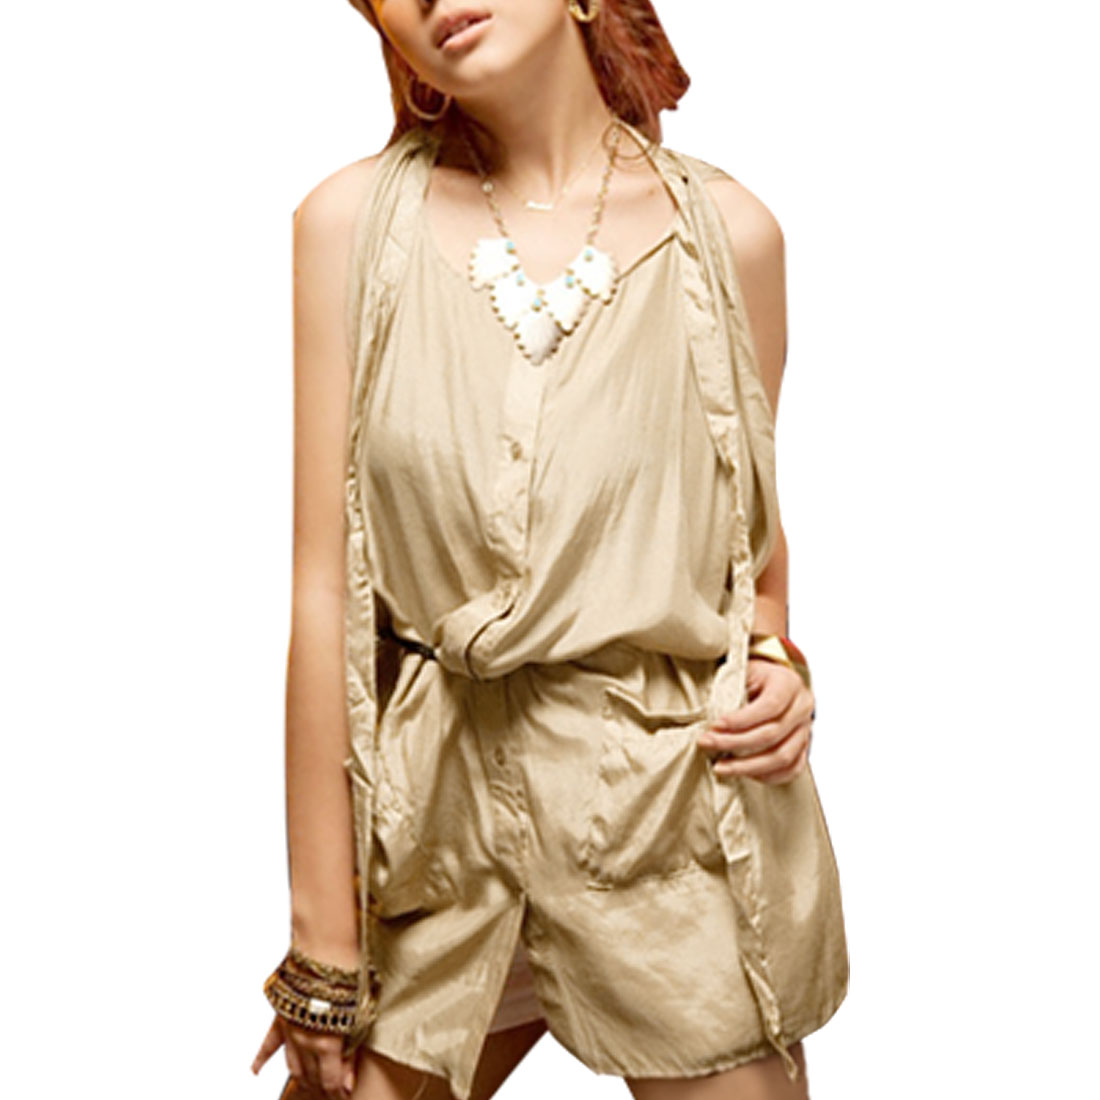 Round Neck Single Breasted Beige Long Blouse Top for Lady S